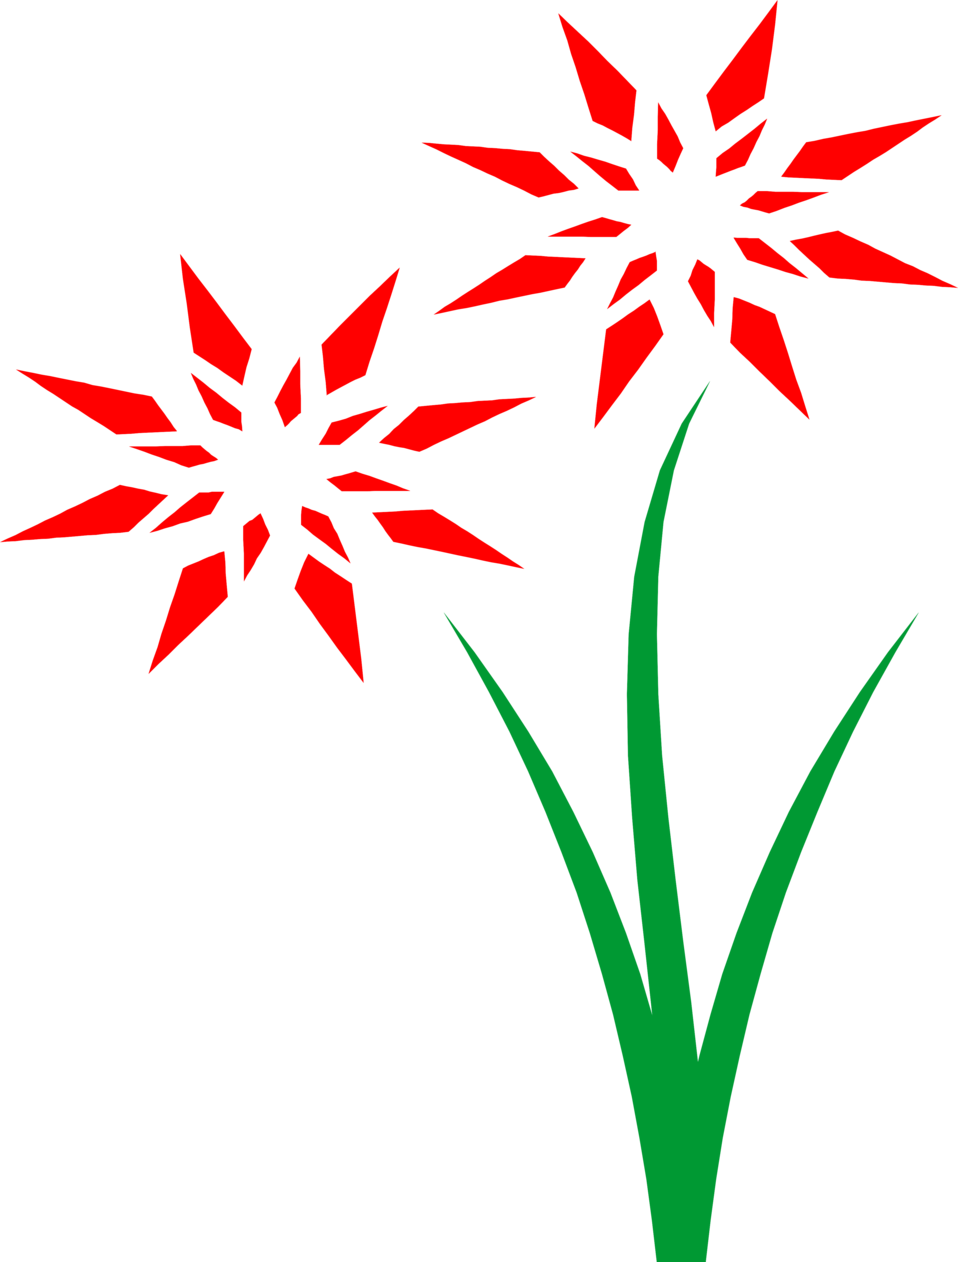 958x1262 Flowers Red Free Stock Photo Illustration Of Red Flowers